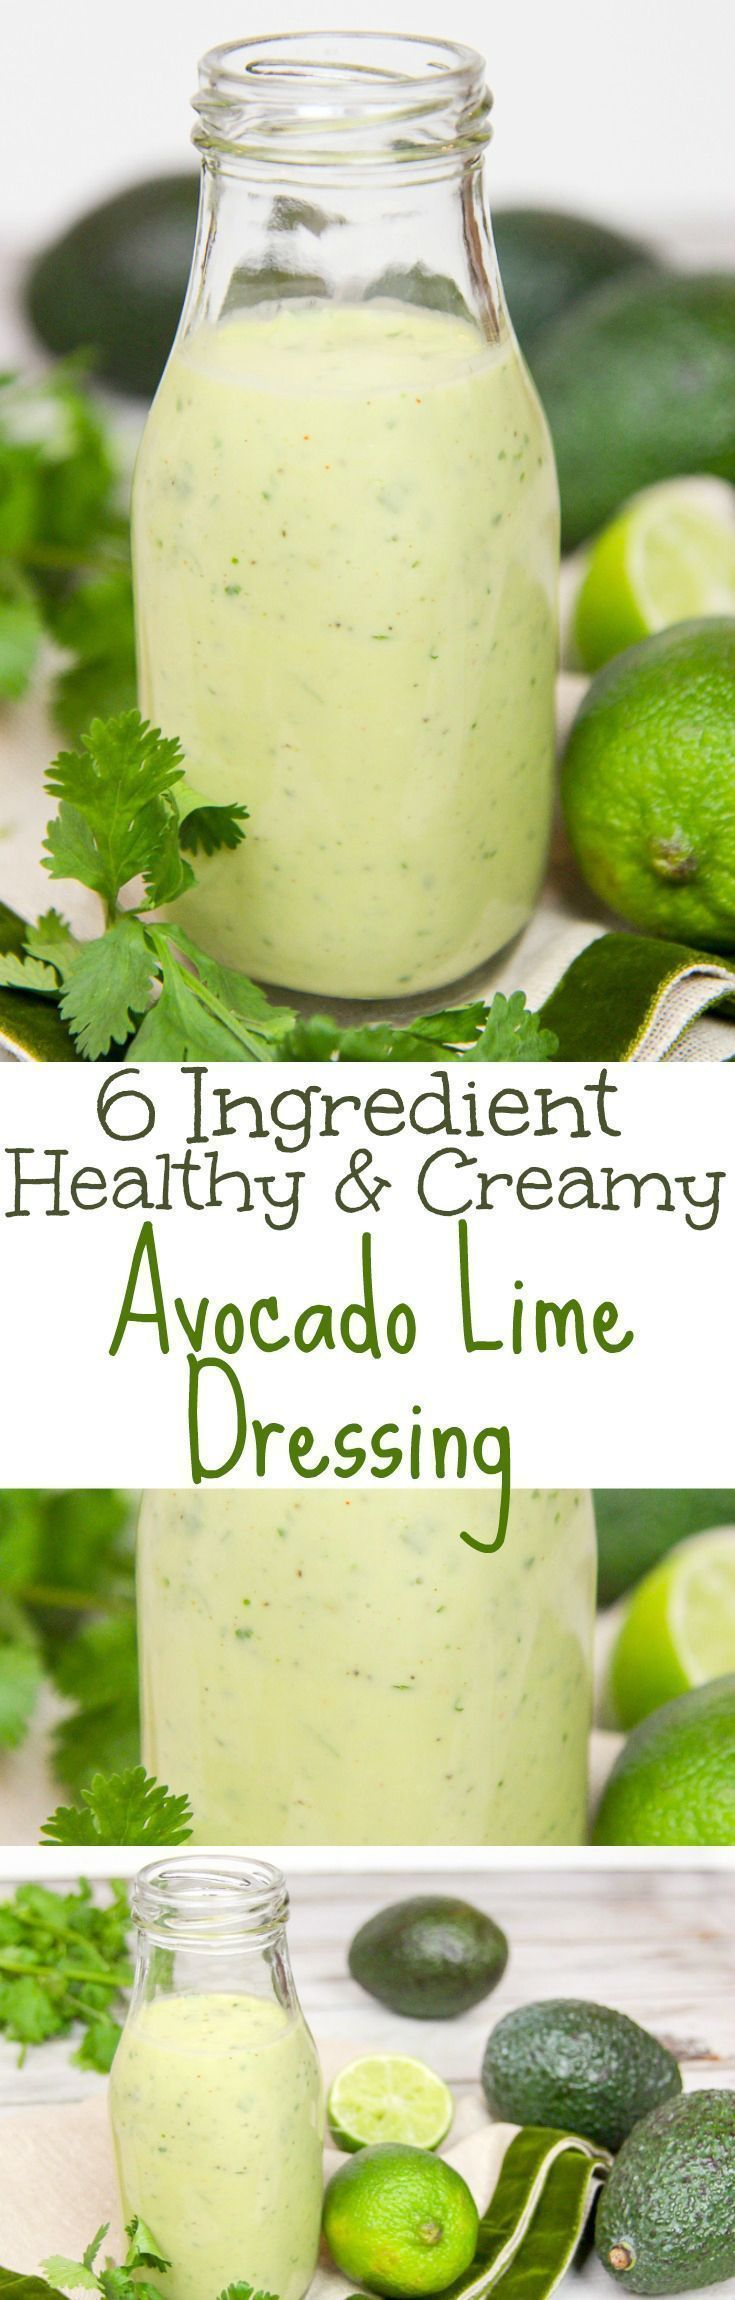 6 Ingredient Healthy & Creamy Avocado Lime Dressing recipe. A clean eating, easy homemade salad dressing with avocado, cilantro and greek yogurt. Low carb, vegetarian and paleo. Great on salads or tacos. / Running in a Skirt